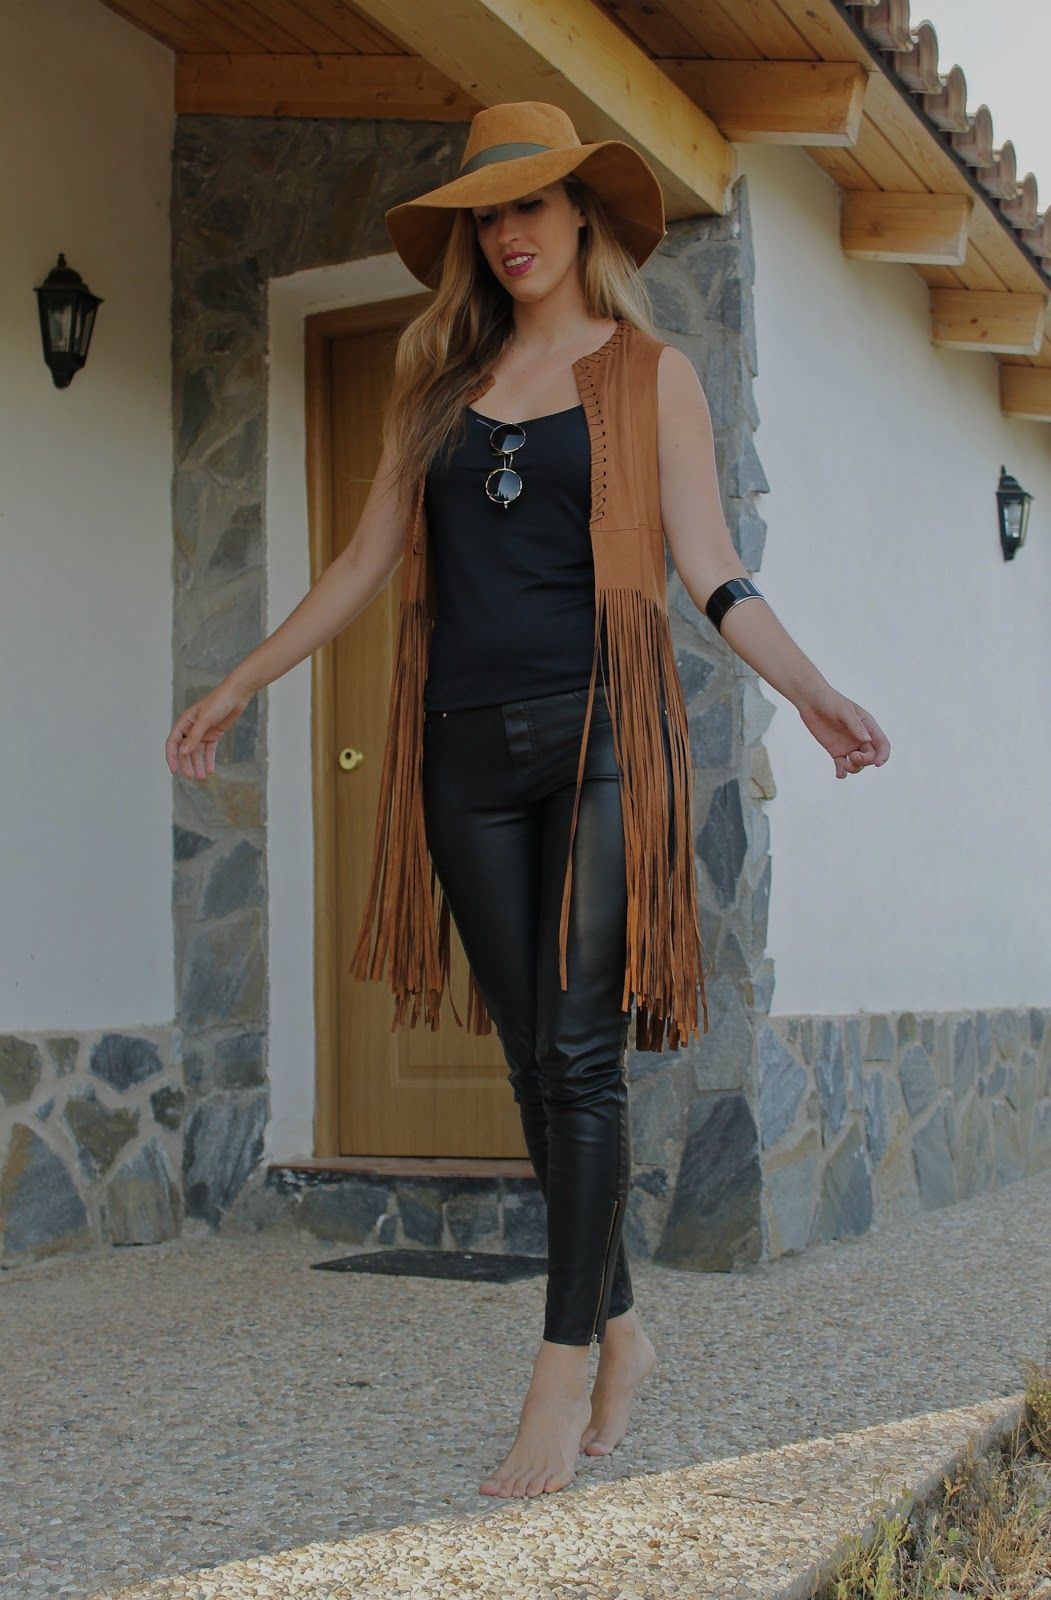 Inner Soul - #blog #blogger #style #streetstyle #fringes #suede #gilet #leather #boho #hat #bohemian